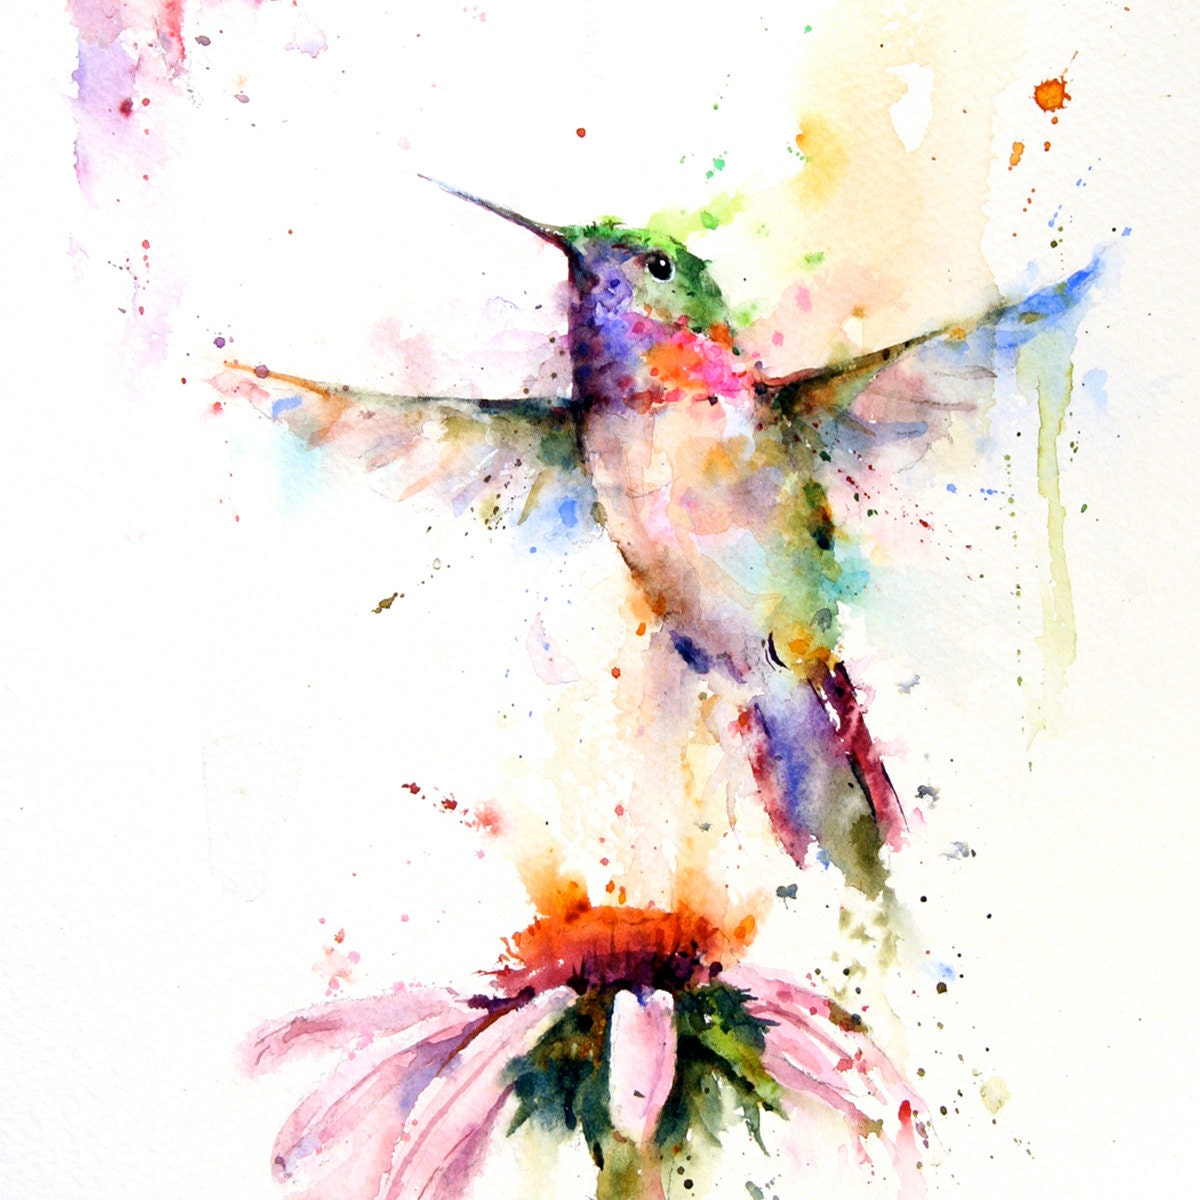 HUMMINGBIRD and Flower Watercolor Bird Art Print by Dean